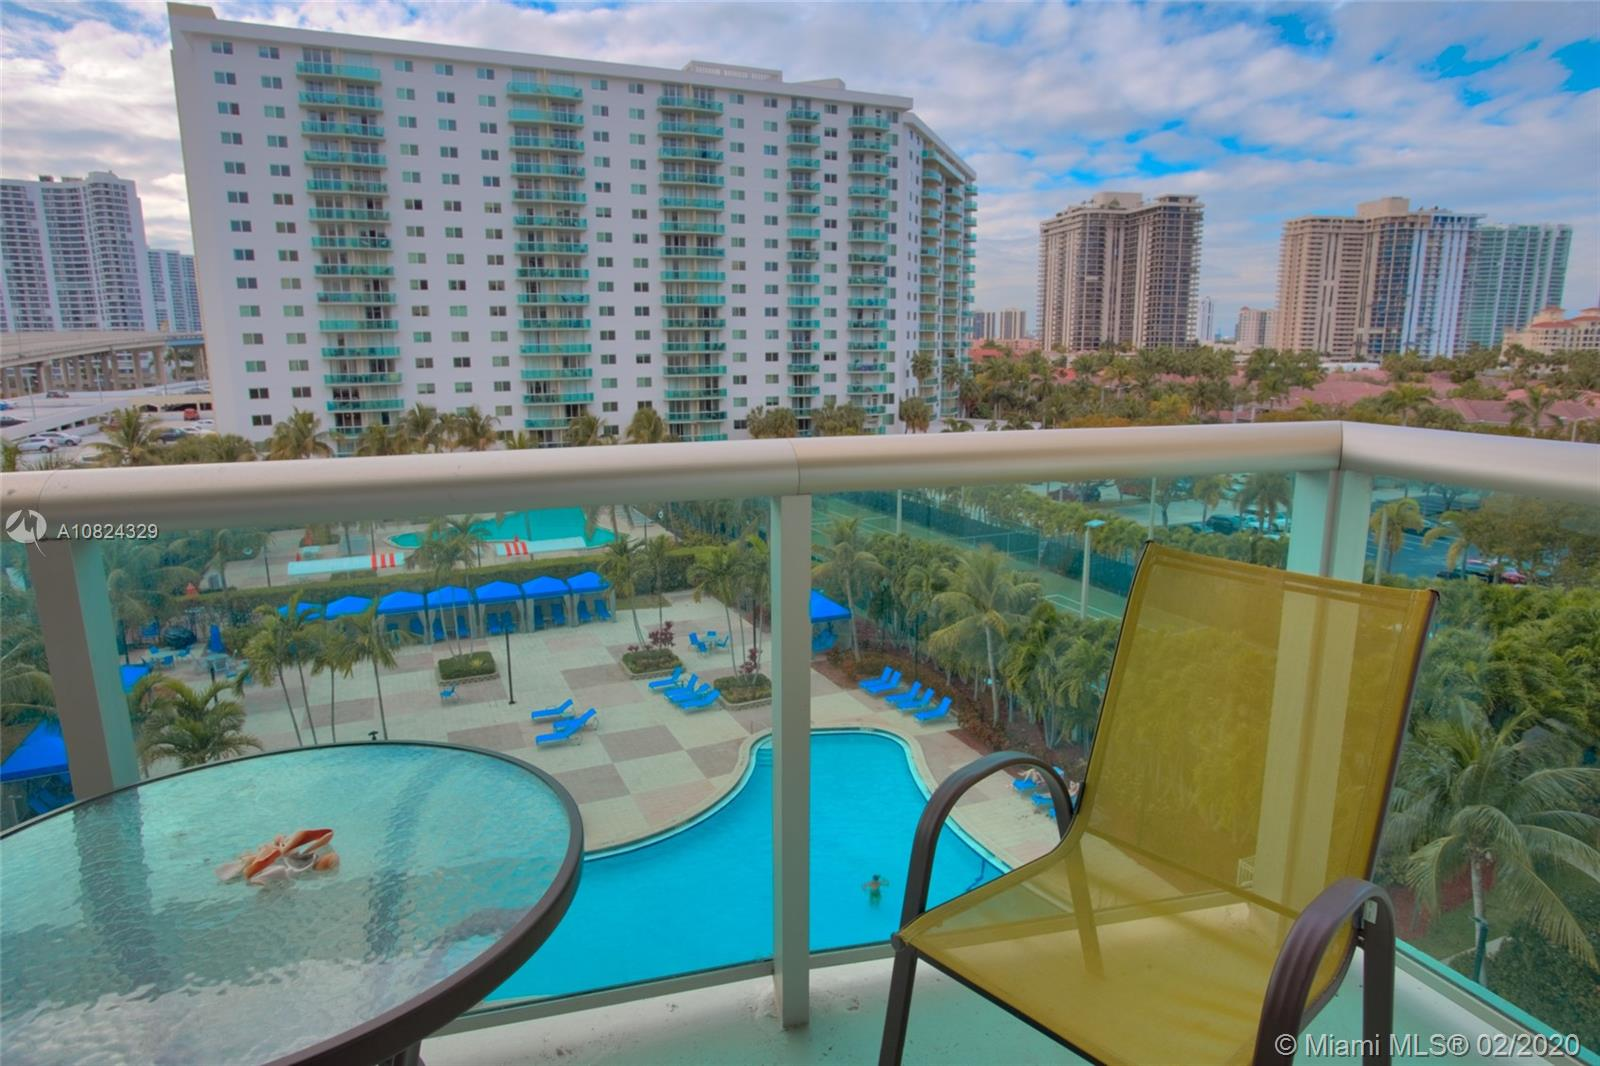 Ocean Reserve #604 - 19370 Collins #604, Sunny Isles Beach, FL 33160